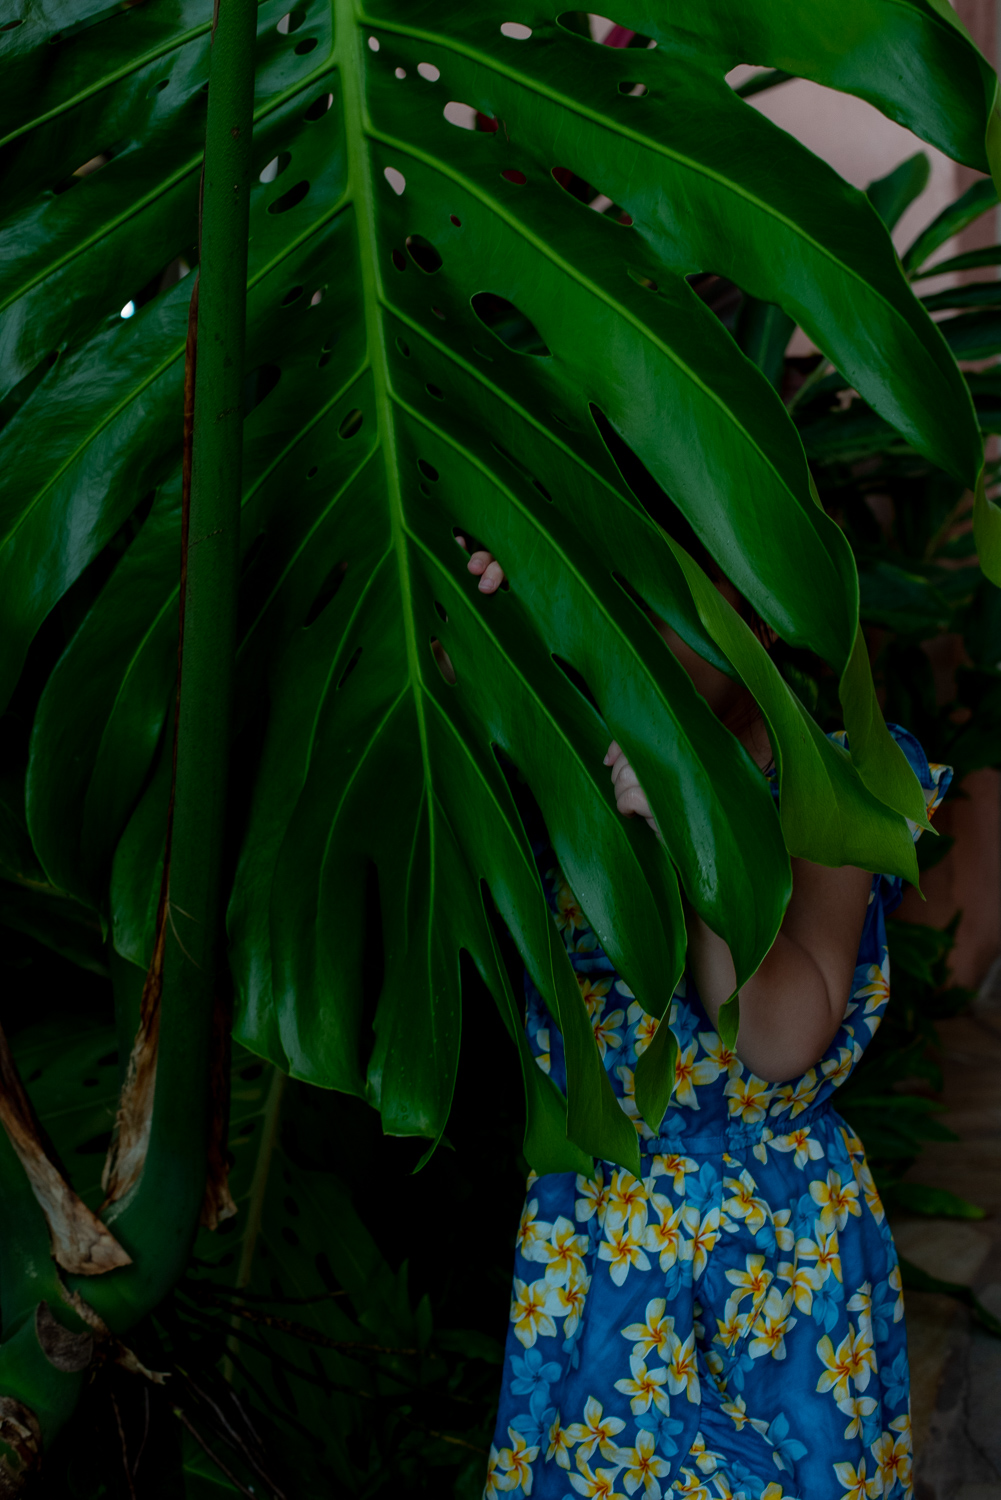 Small girl hiding behind large green leaf